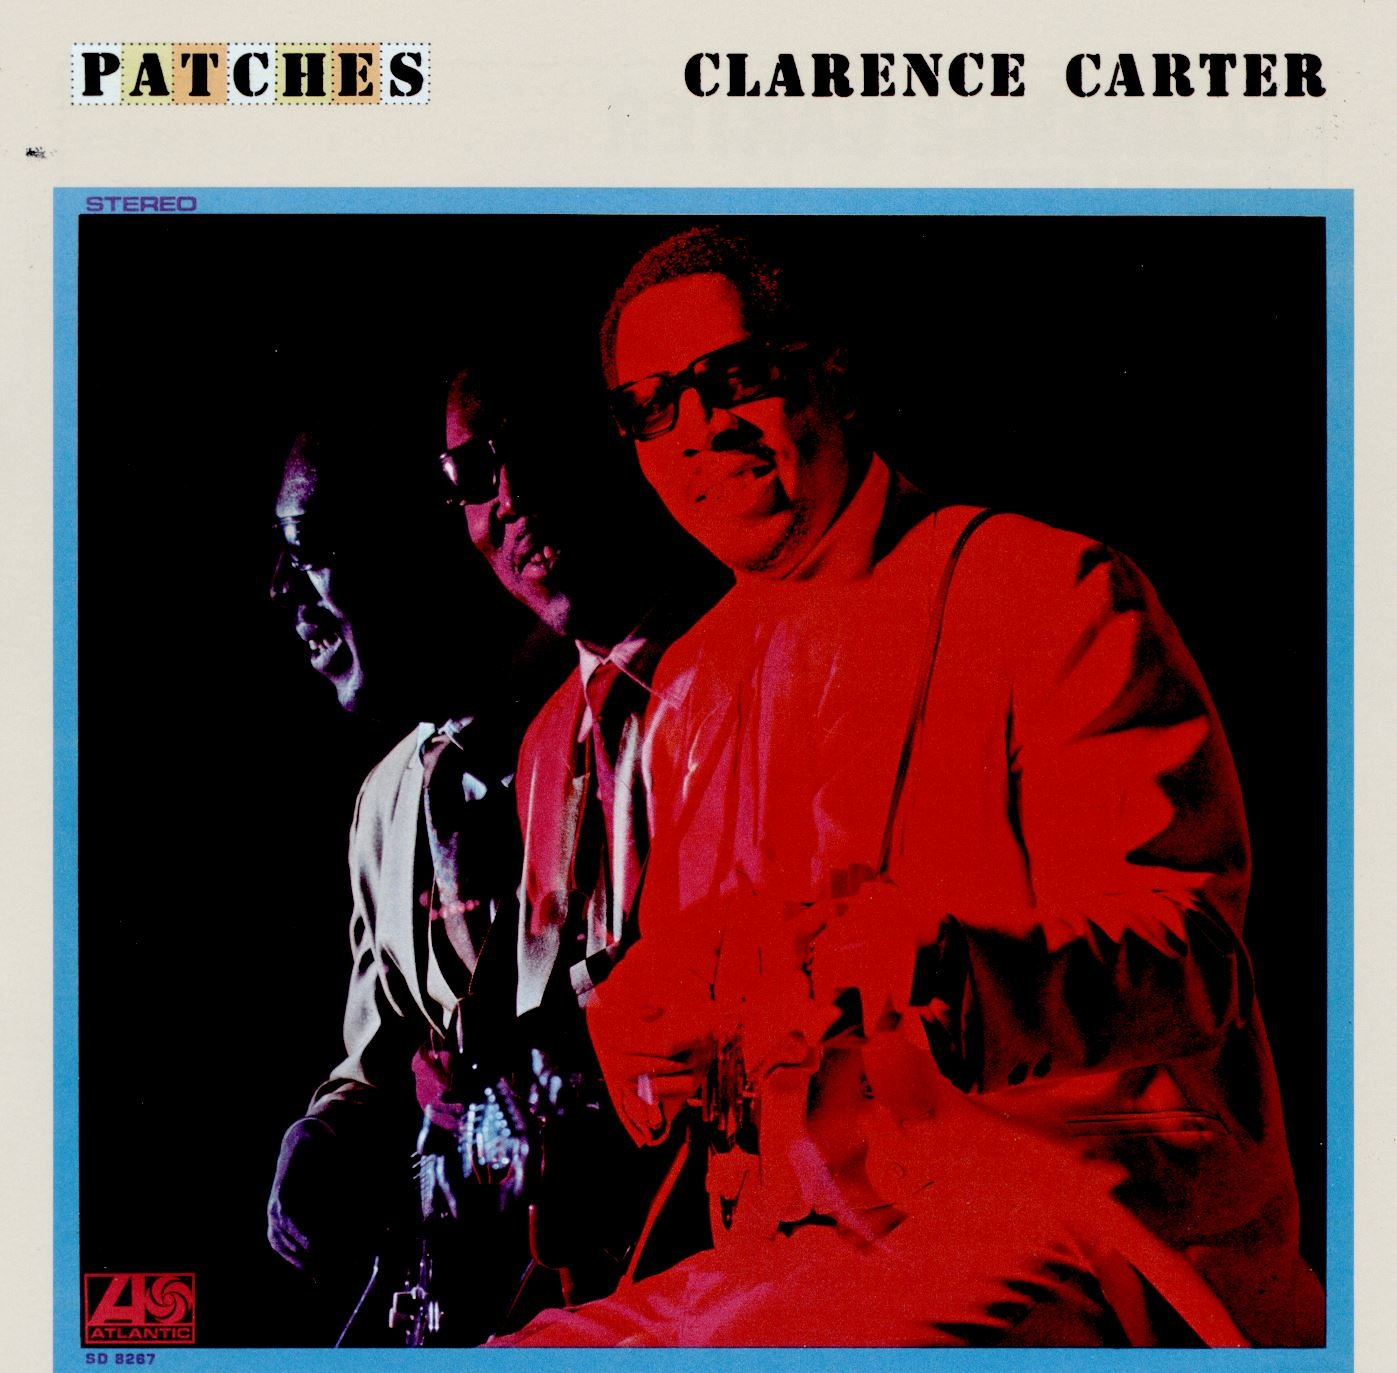 CARTER, CLARENCE - Patches - Amazon.com Music